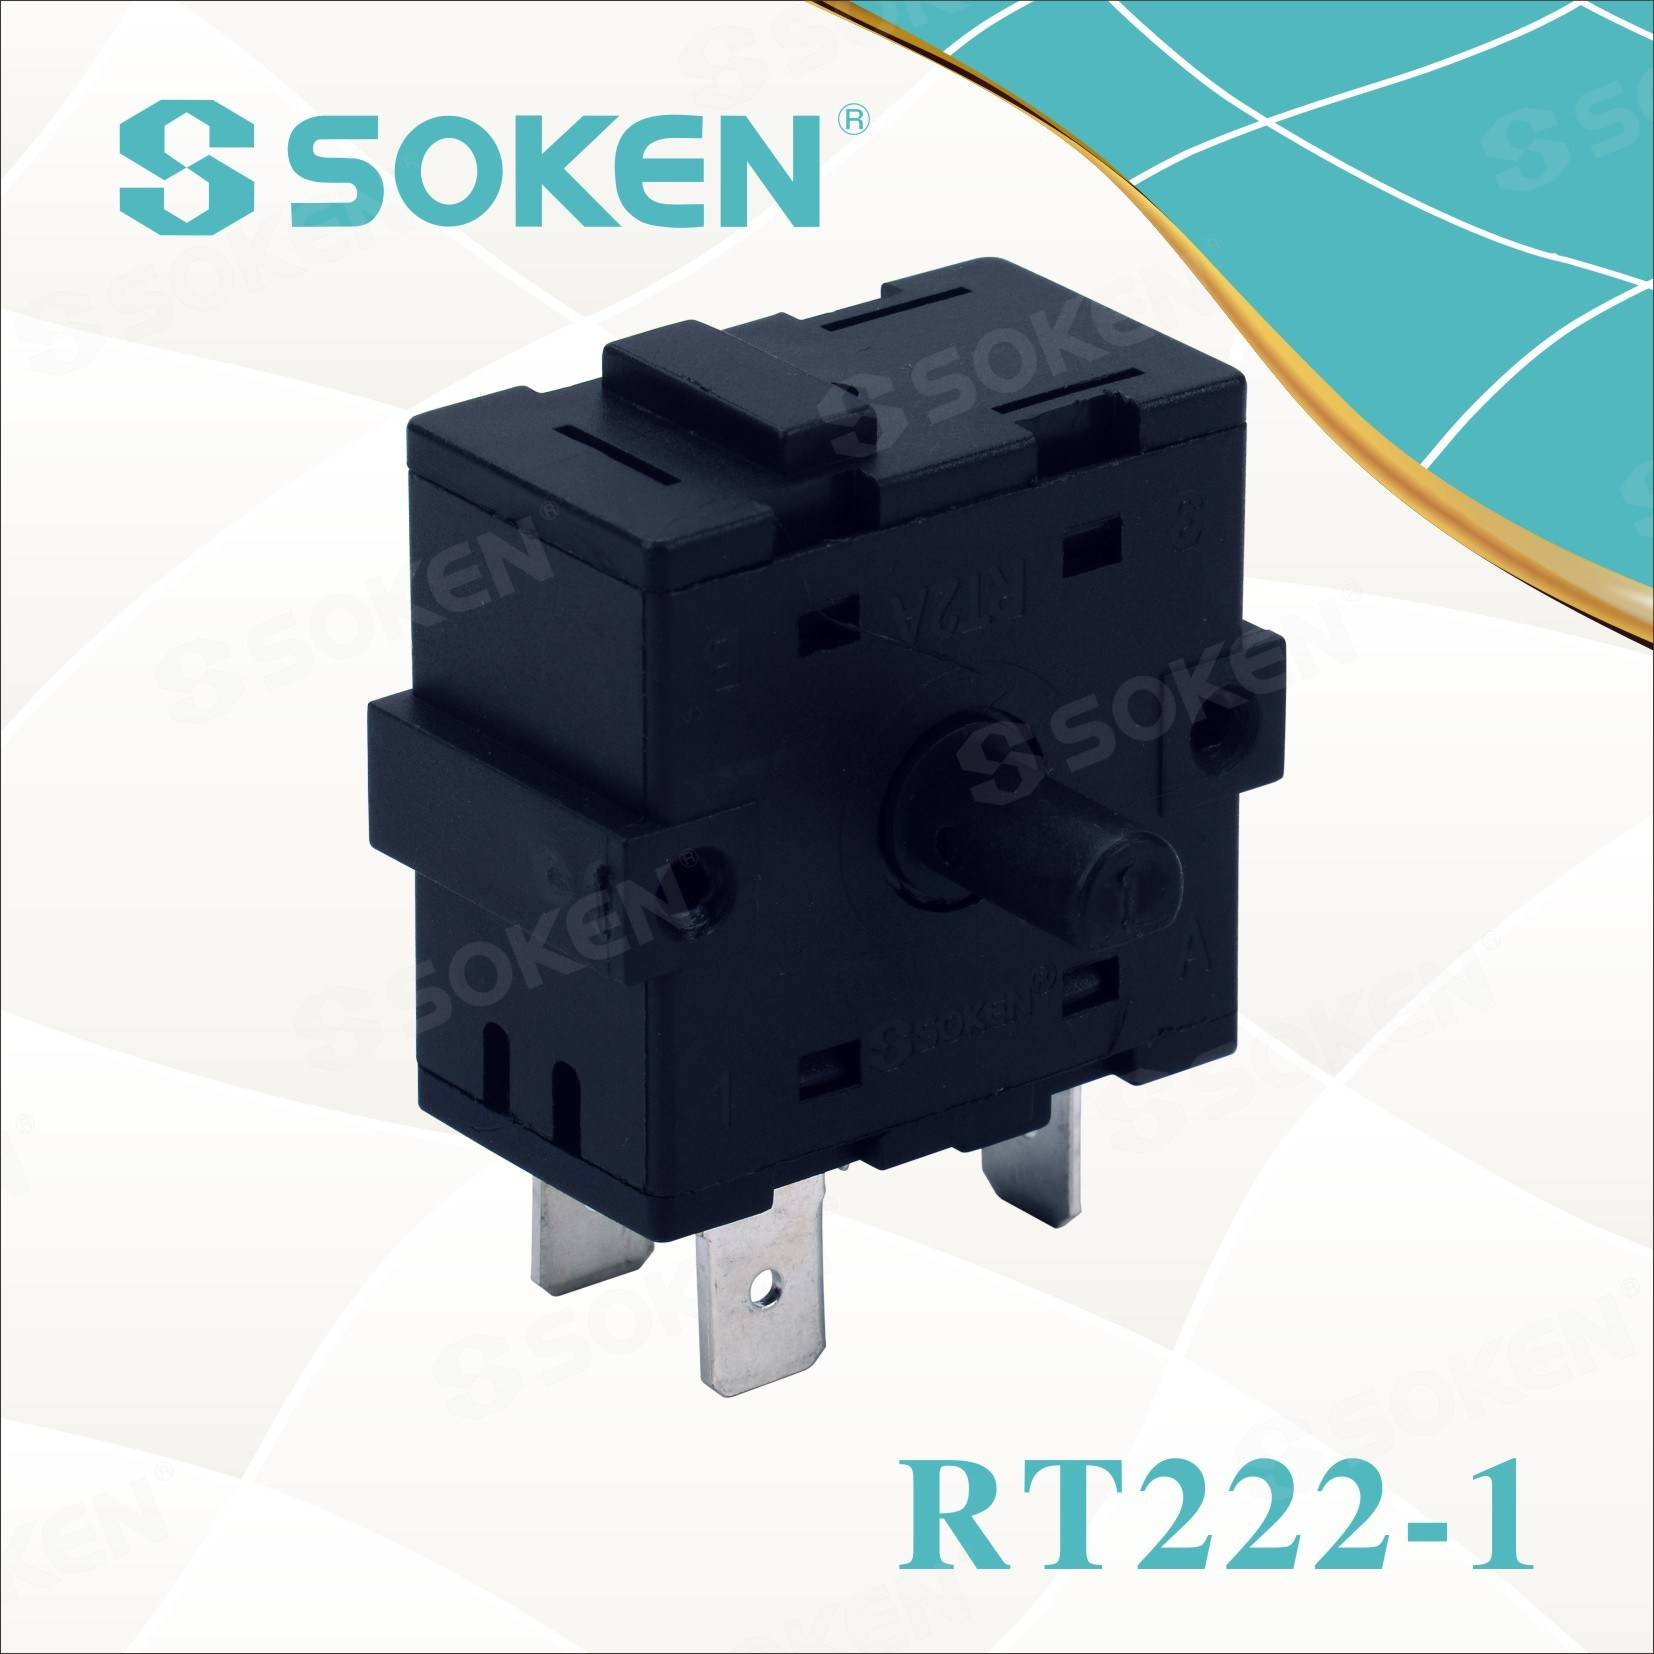 China Gold Supplier for Industrial Indicator Light -